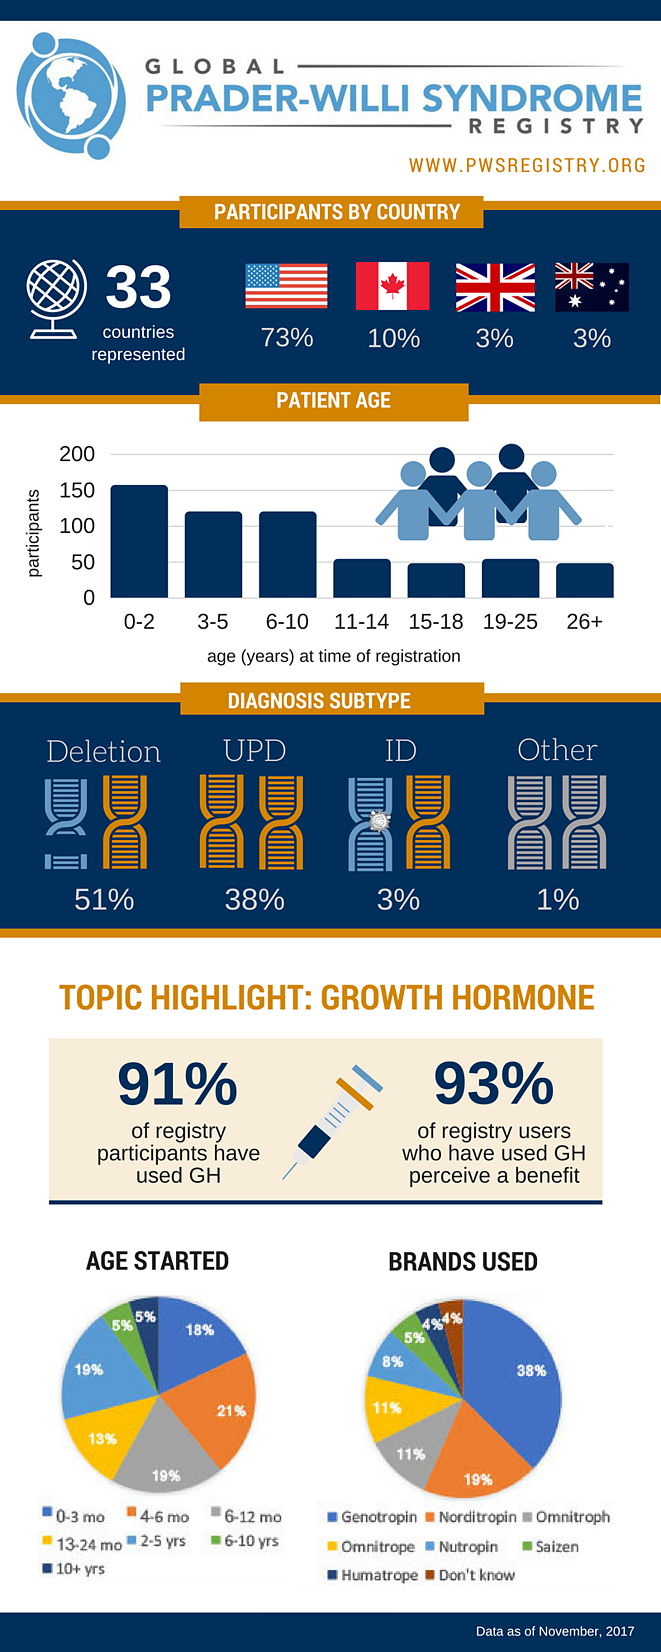 pws-registry-data-91-percent-have-used-growth-hormone-for-pws-infographic.png